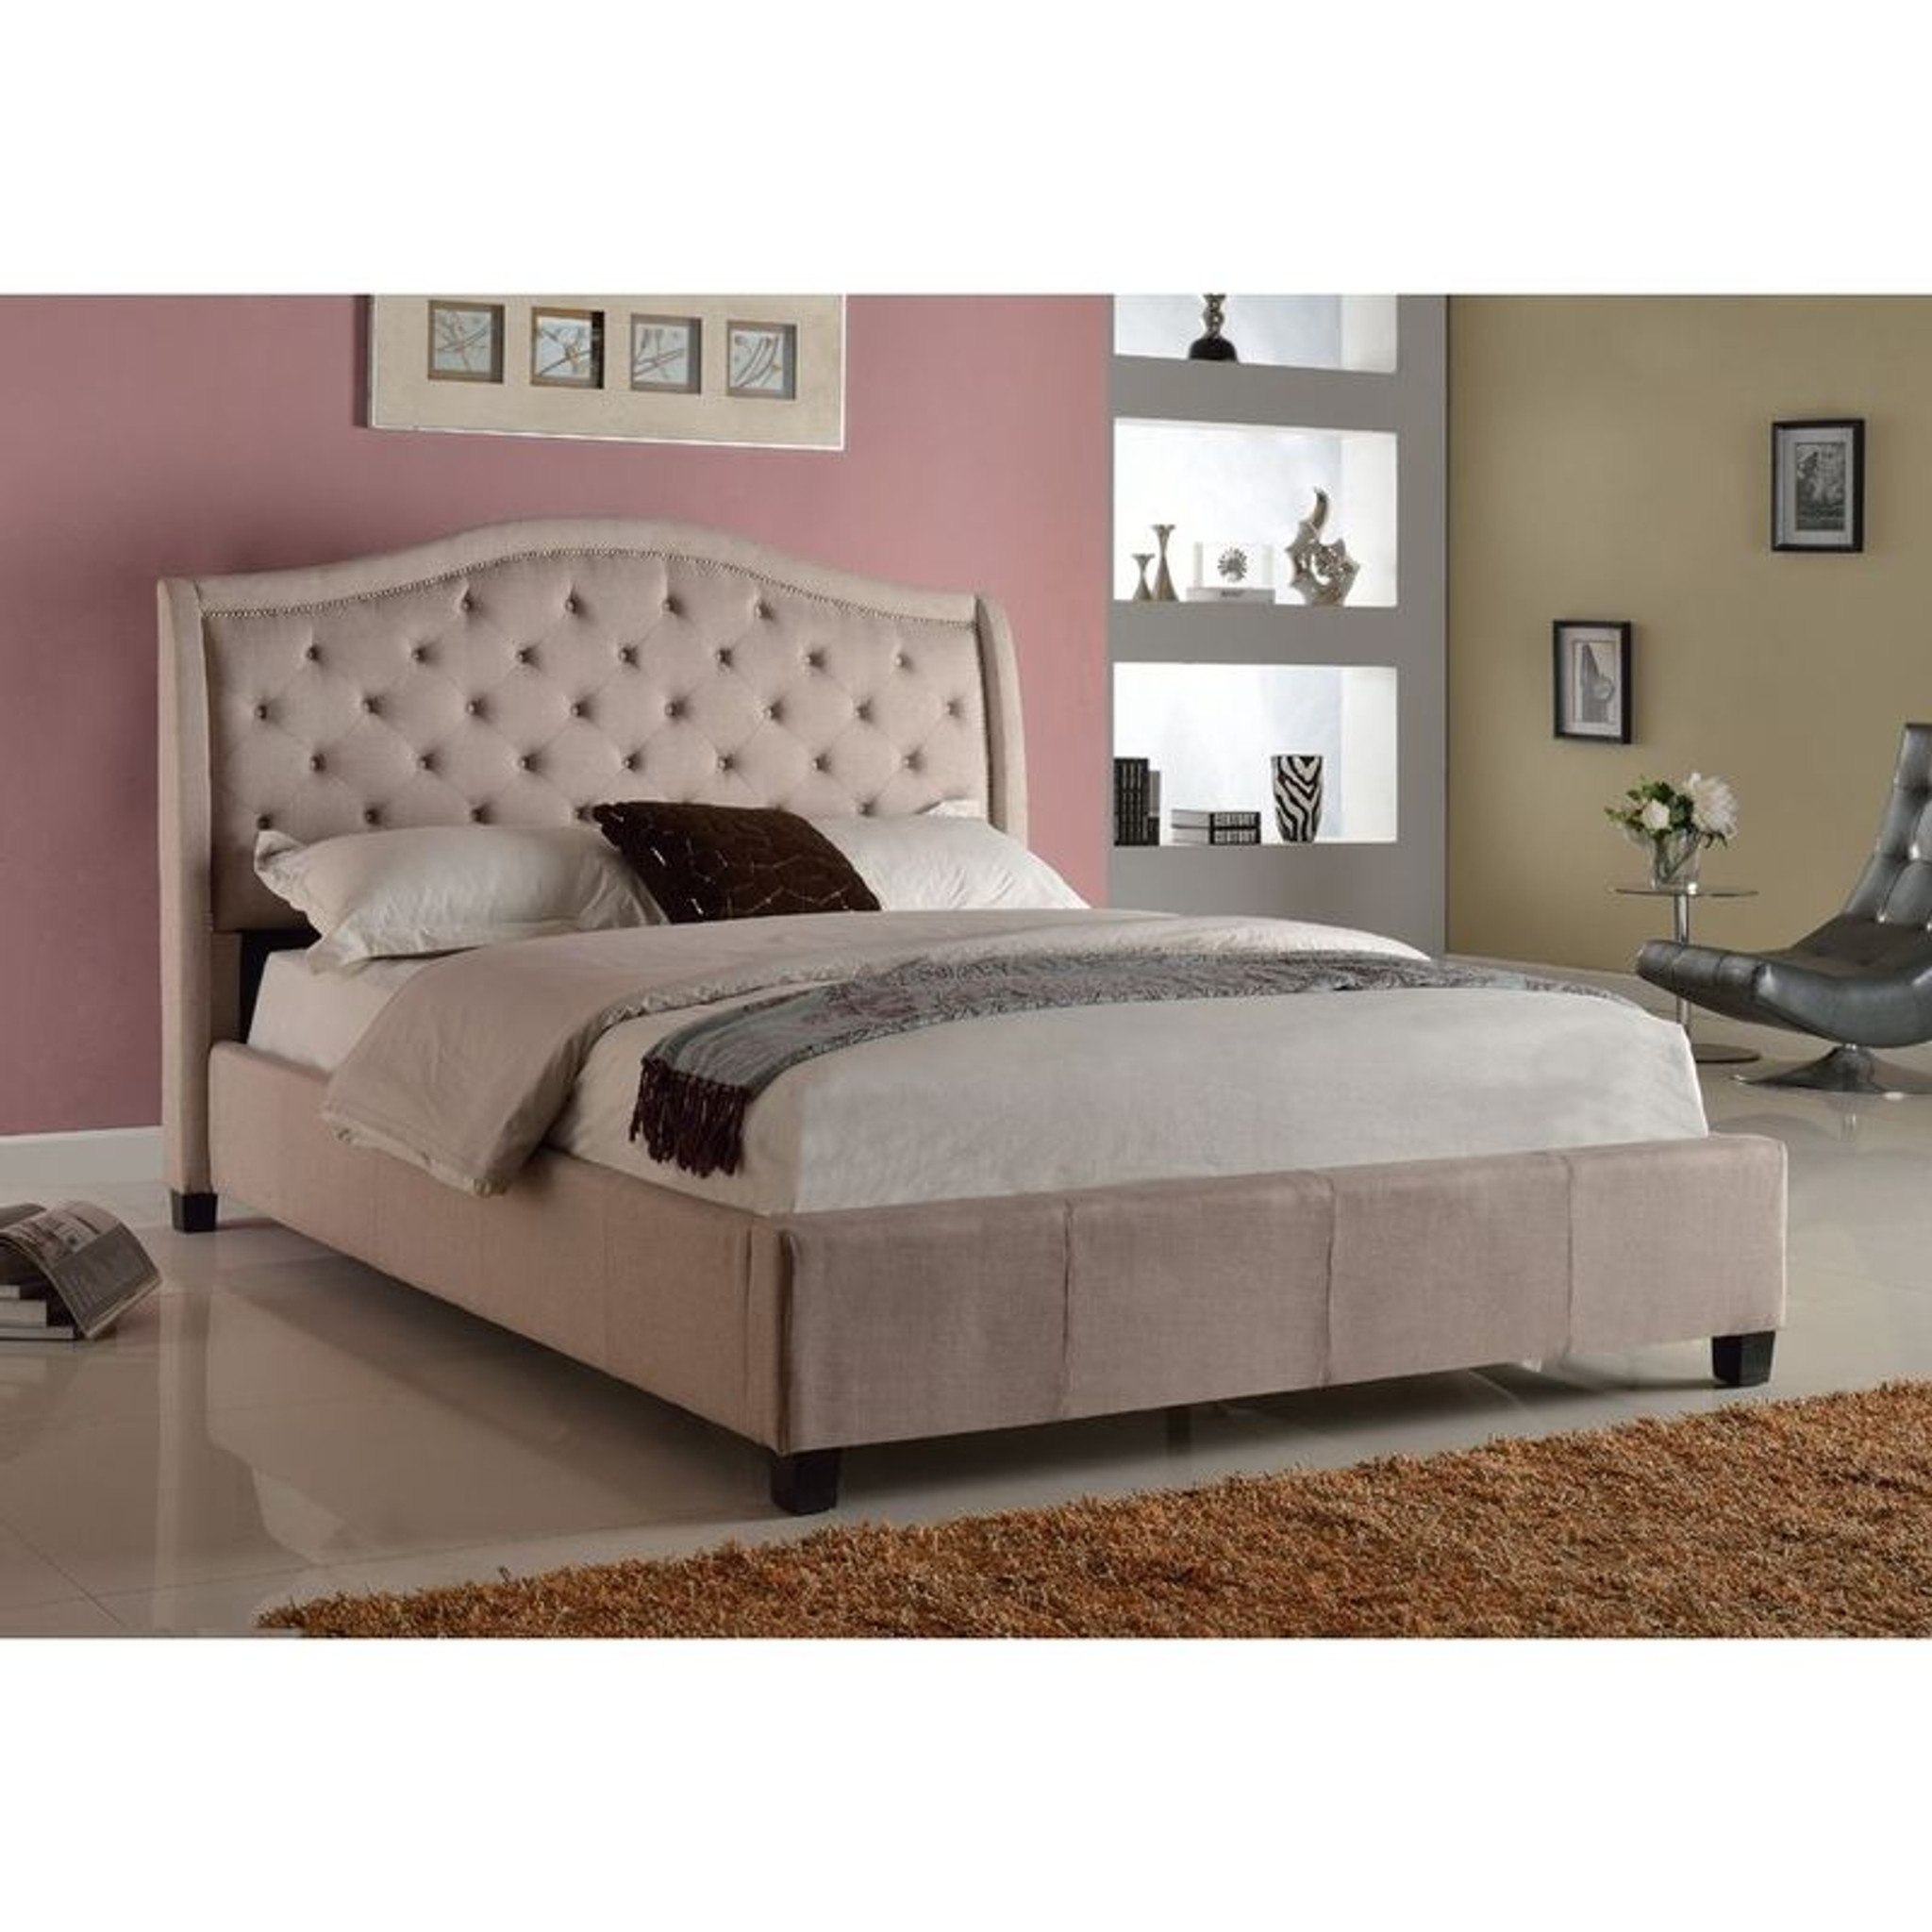 5262 Q Addison Upholstered Queen Bed With Tufted Headboard